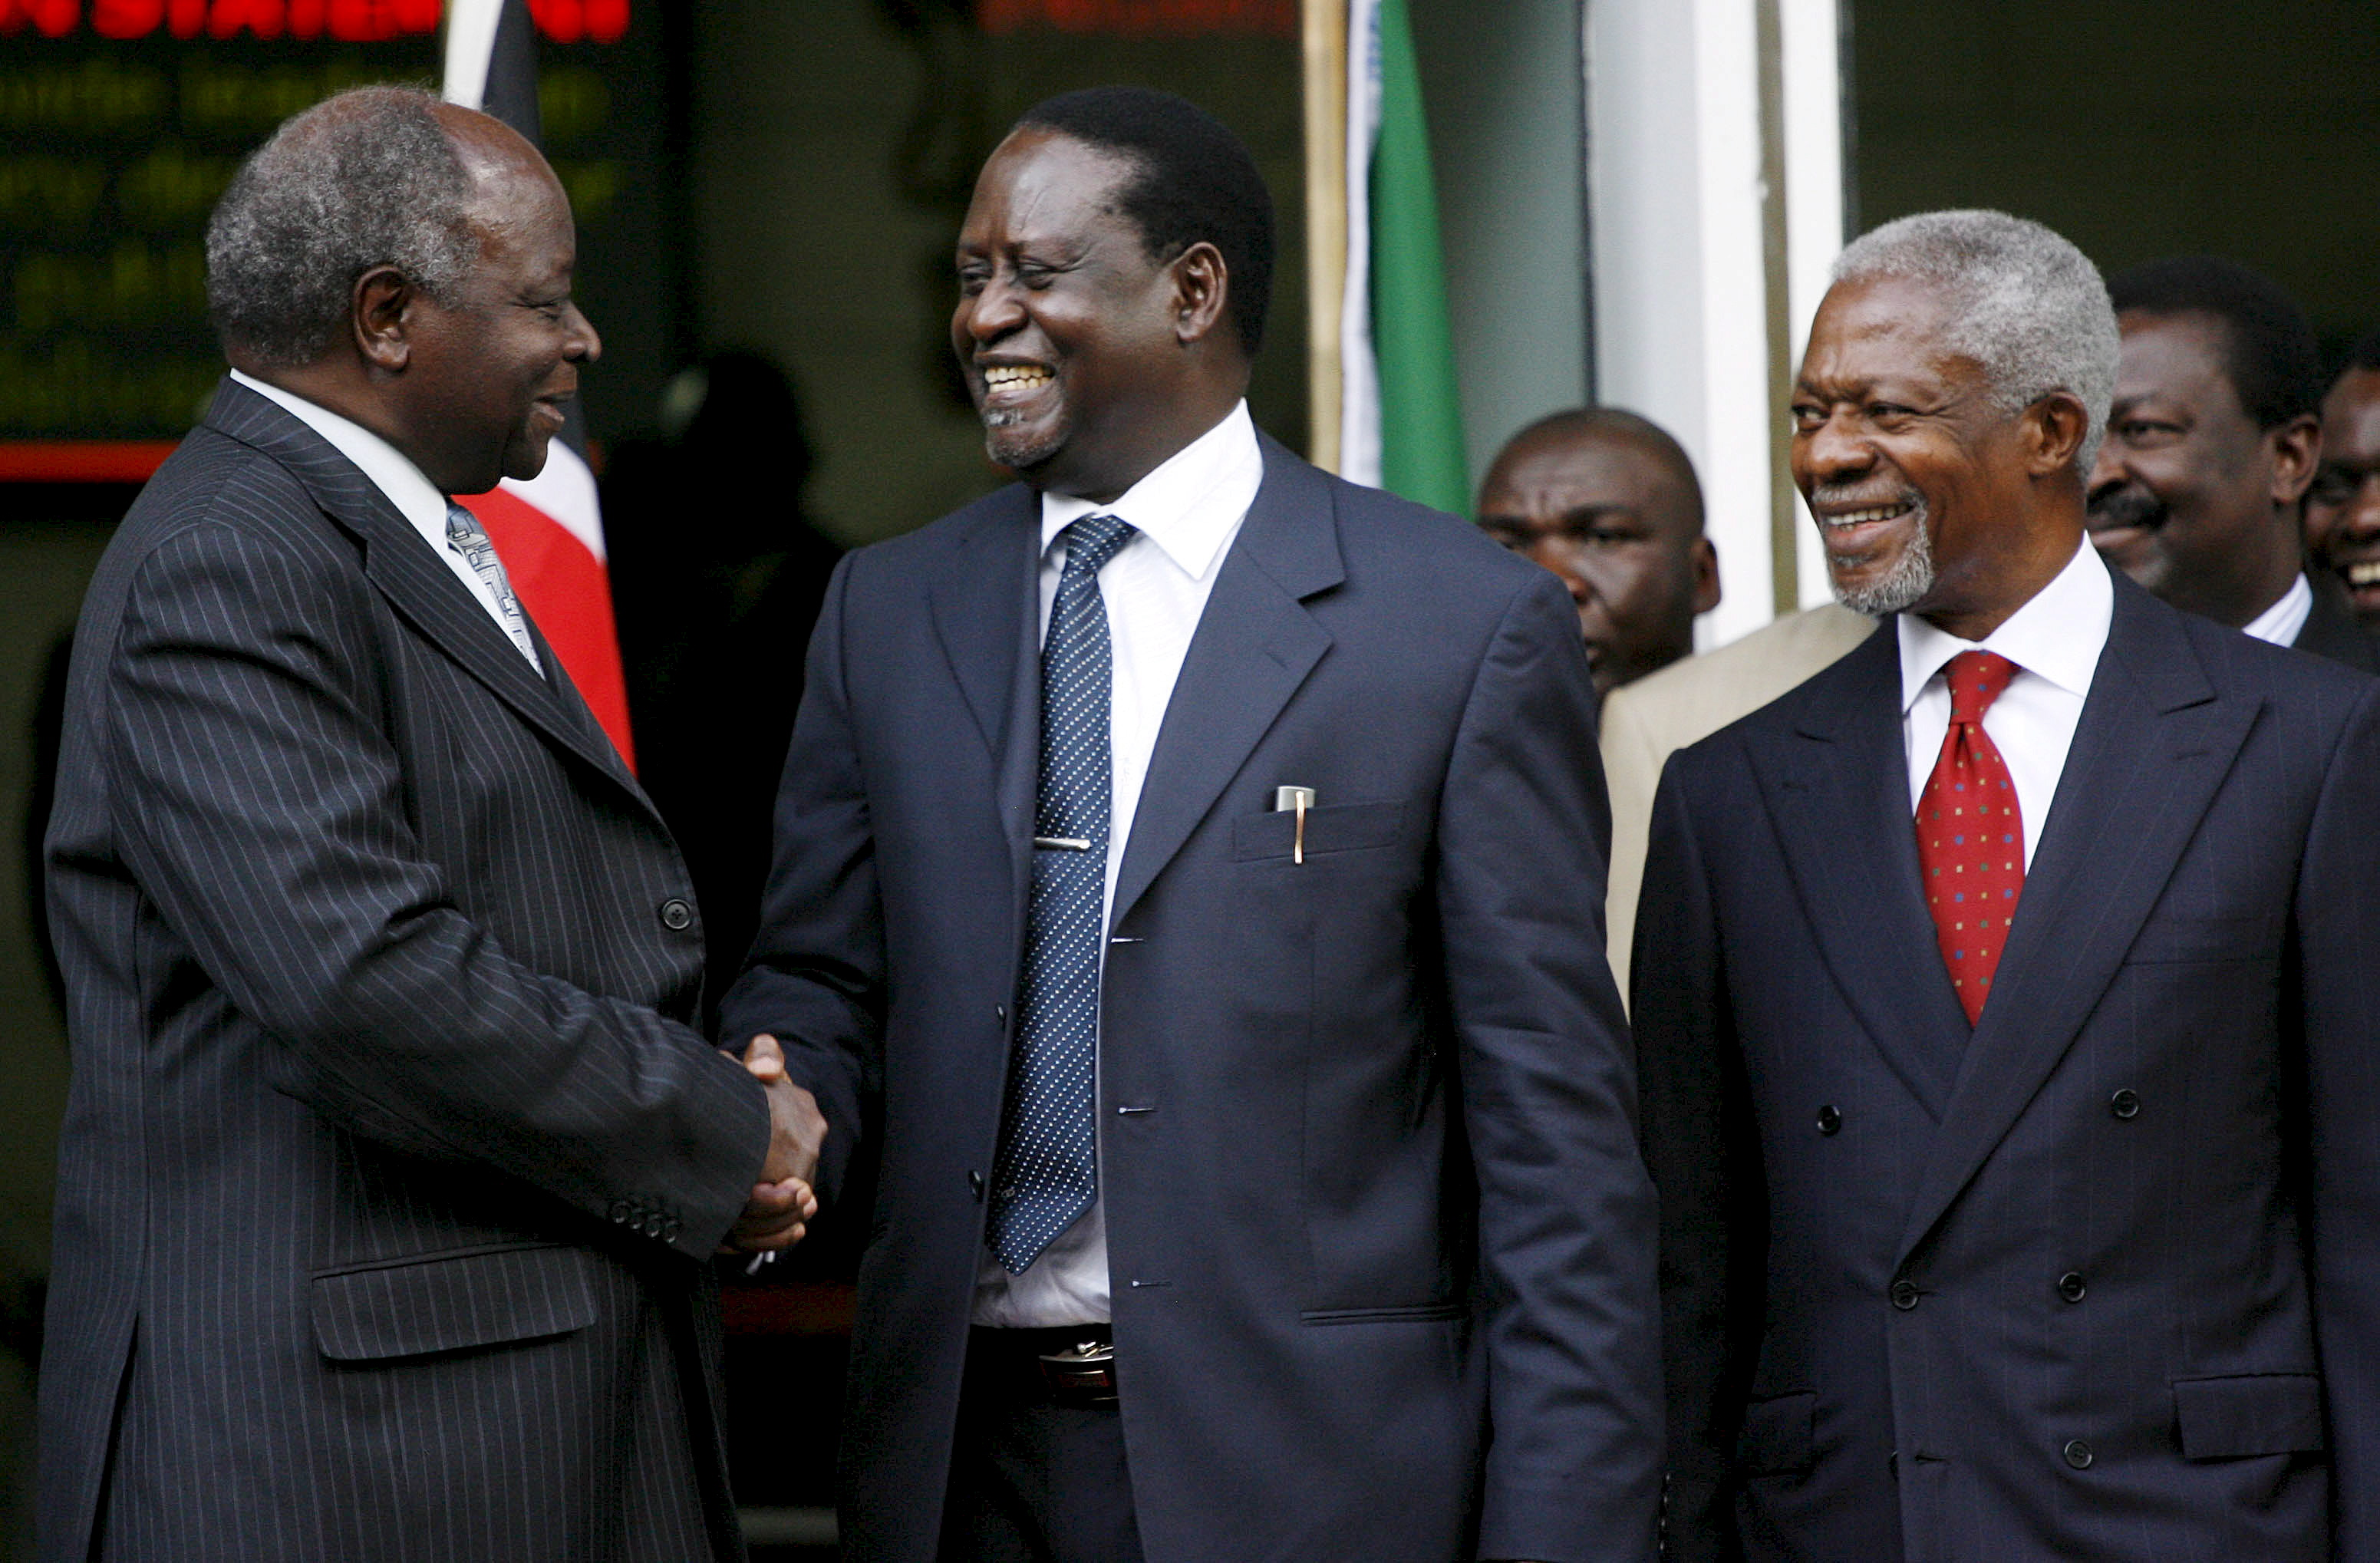 Kenyan President Mwai Kibaki (L) shakes hands with opposition leader Raila Odinga (C) while former UN Secretary General Kofi Annan (R looks on shortly after signing a contentious power sharing deal on 28 February 2008. Kenya's rival leaders signed a power-sharing deal mediated by Kofi Annan to end the country's post-election crisis which killed over 1500 people and left 600,000 displaced.